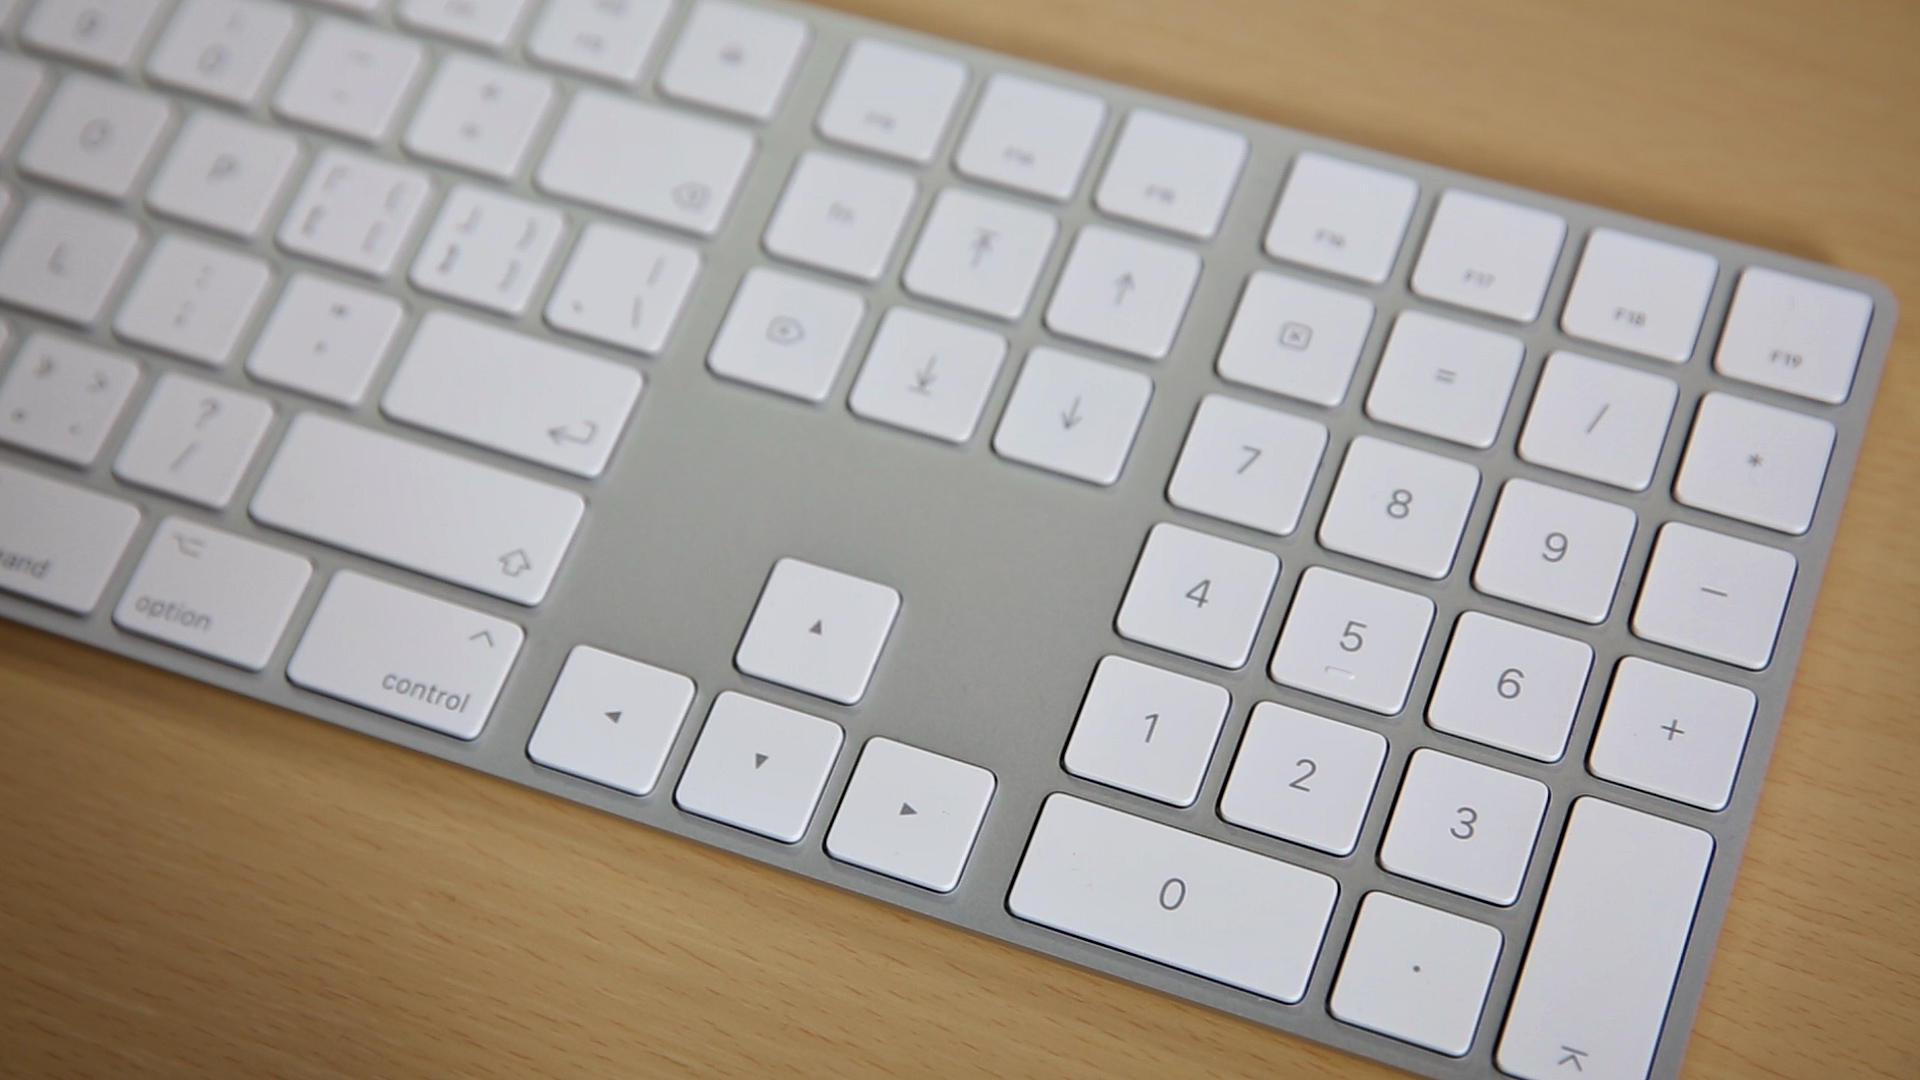 Video: Apple's new by the numbers keyboard